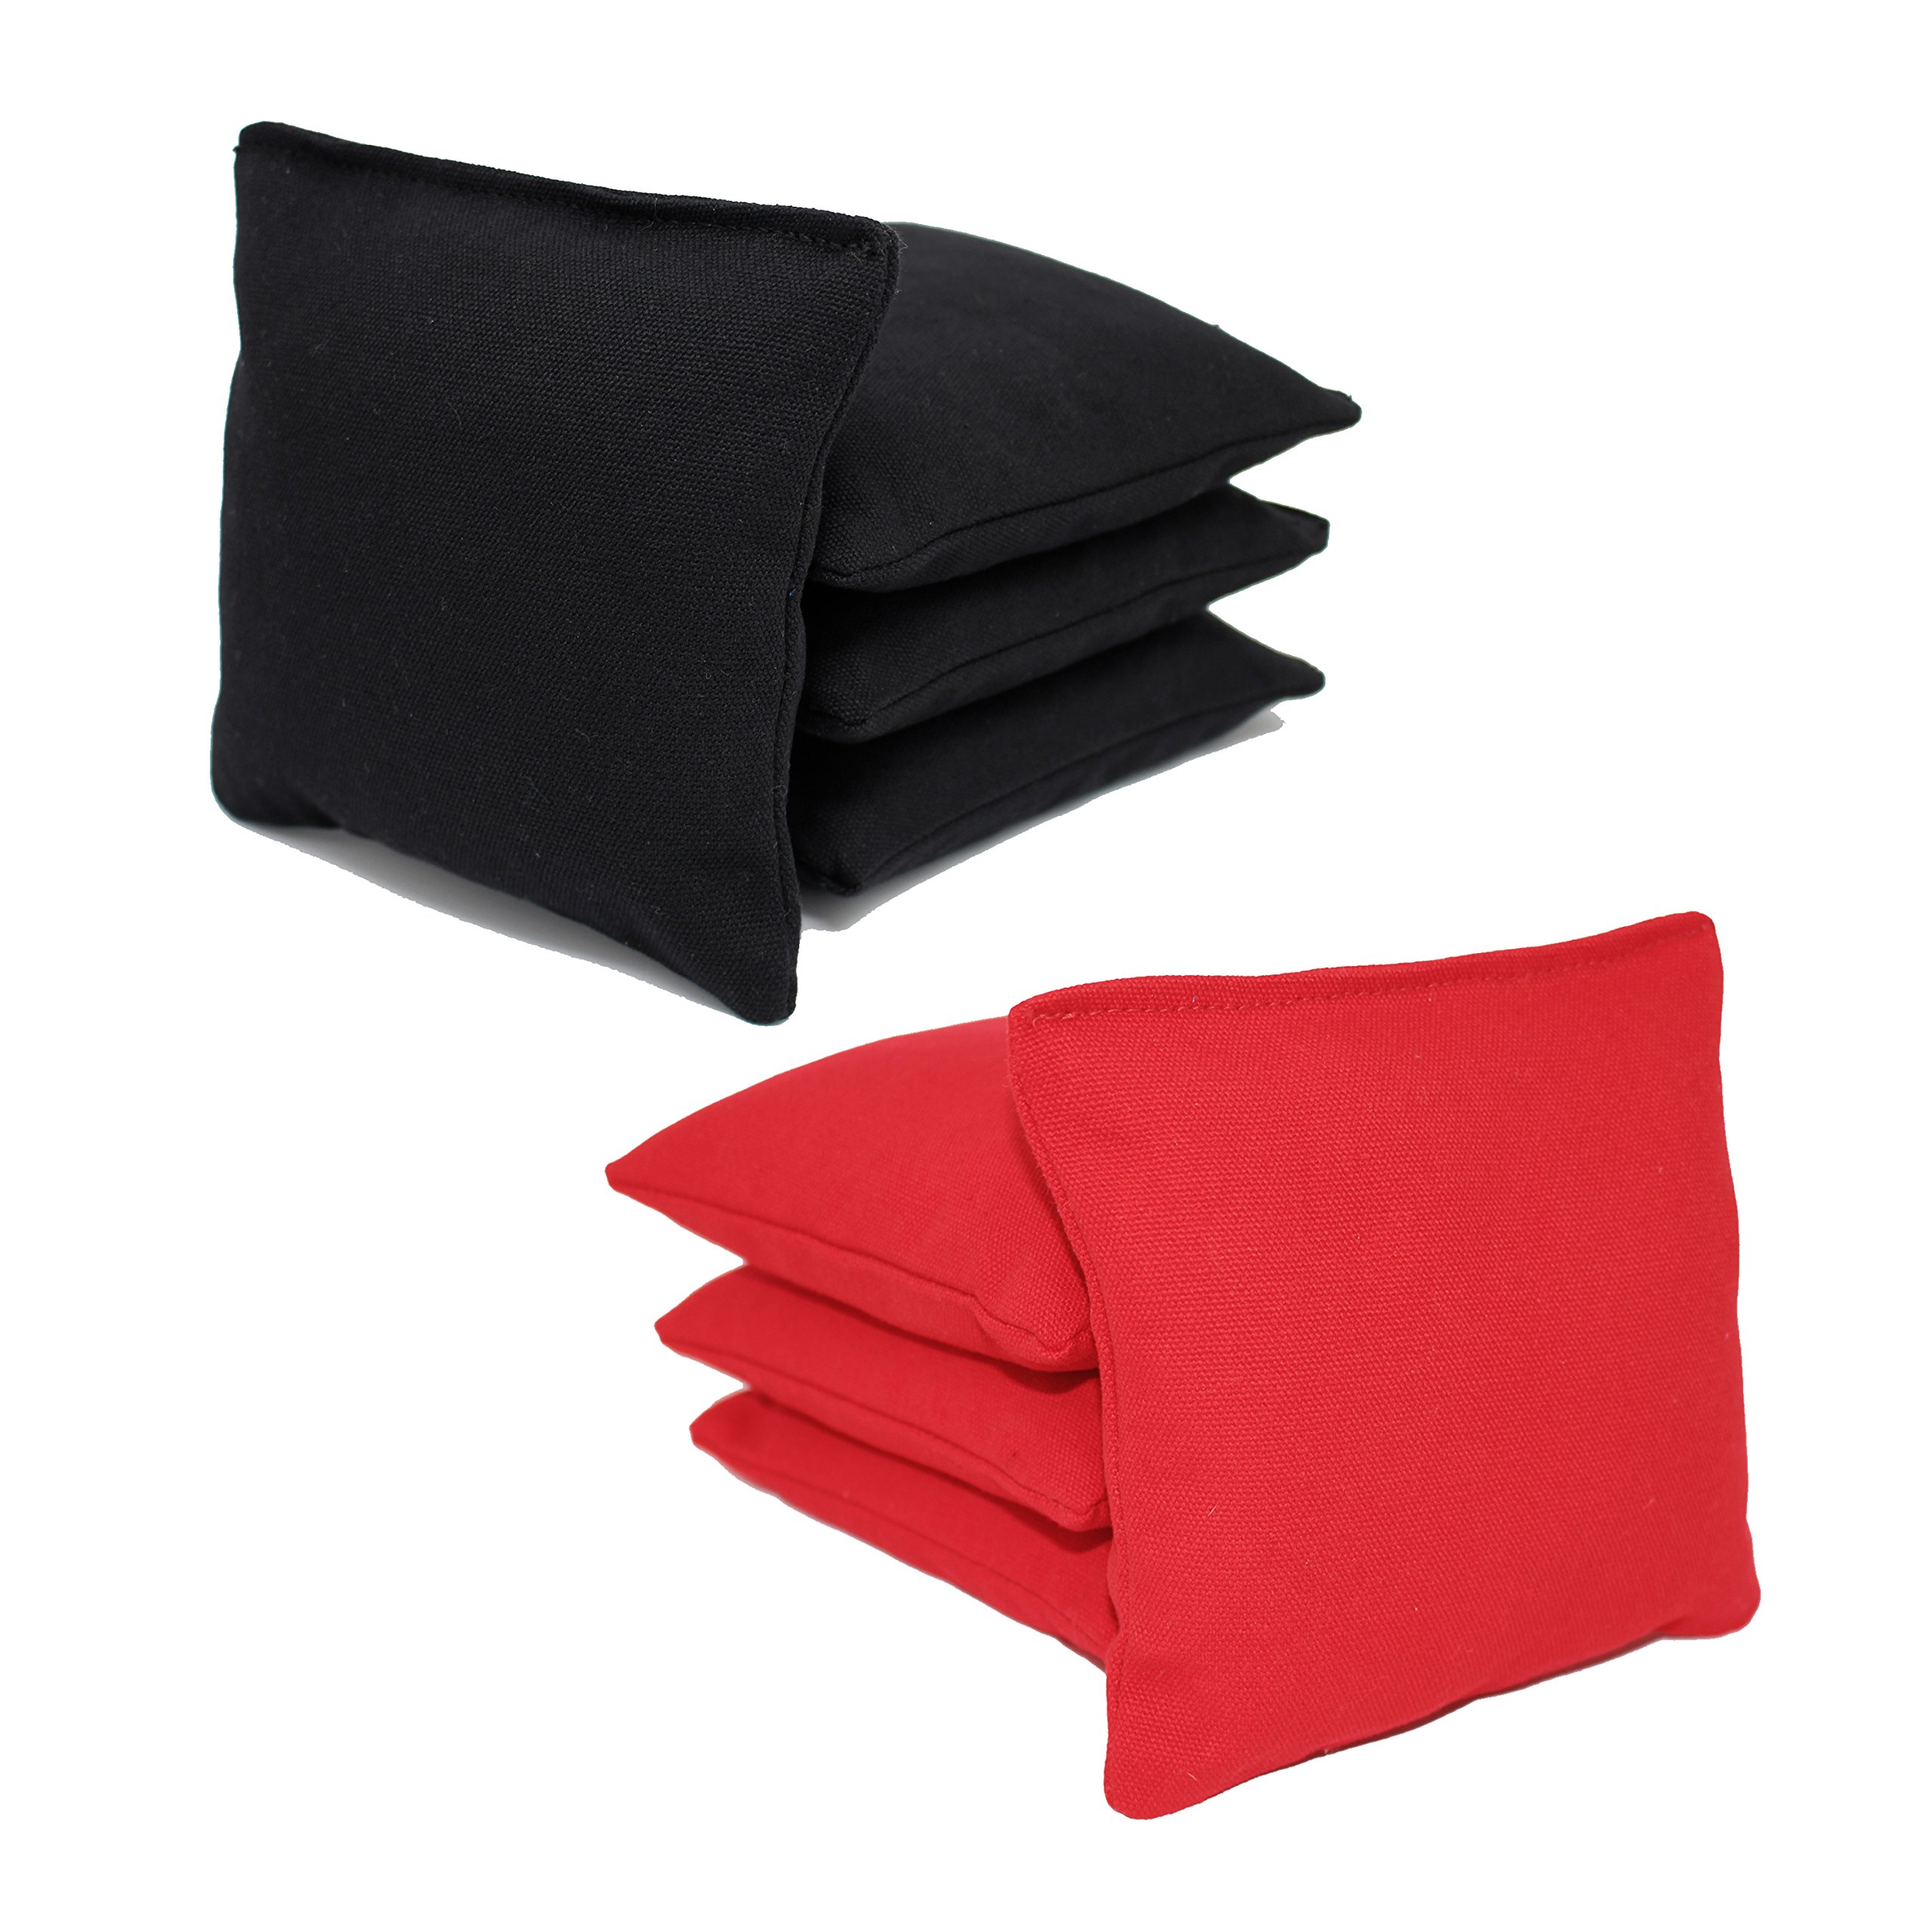 Free Donkey Sports ACA Regulation Cornhole Bags (Set of 8) (Black and Red) 25+ Colors to Choose from.